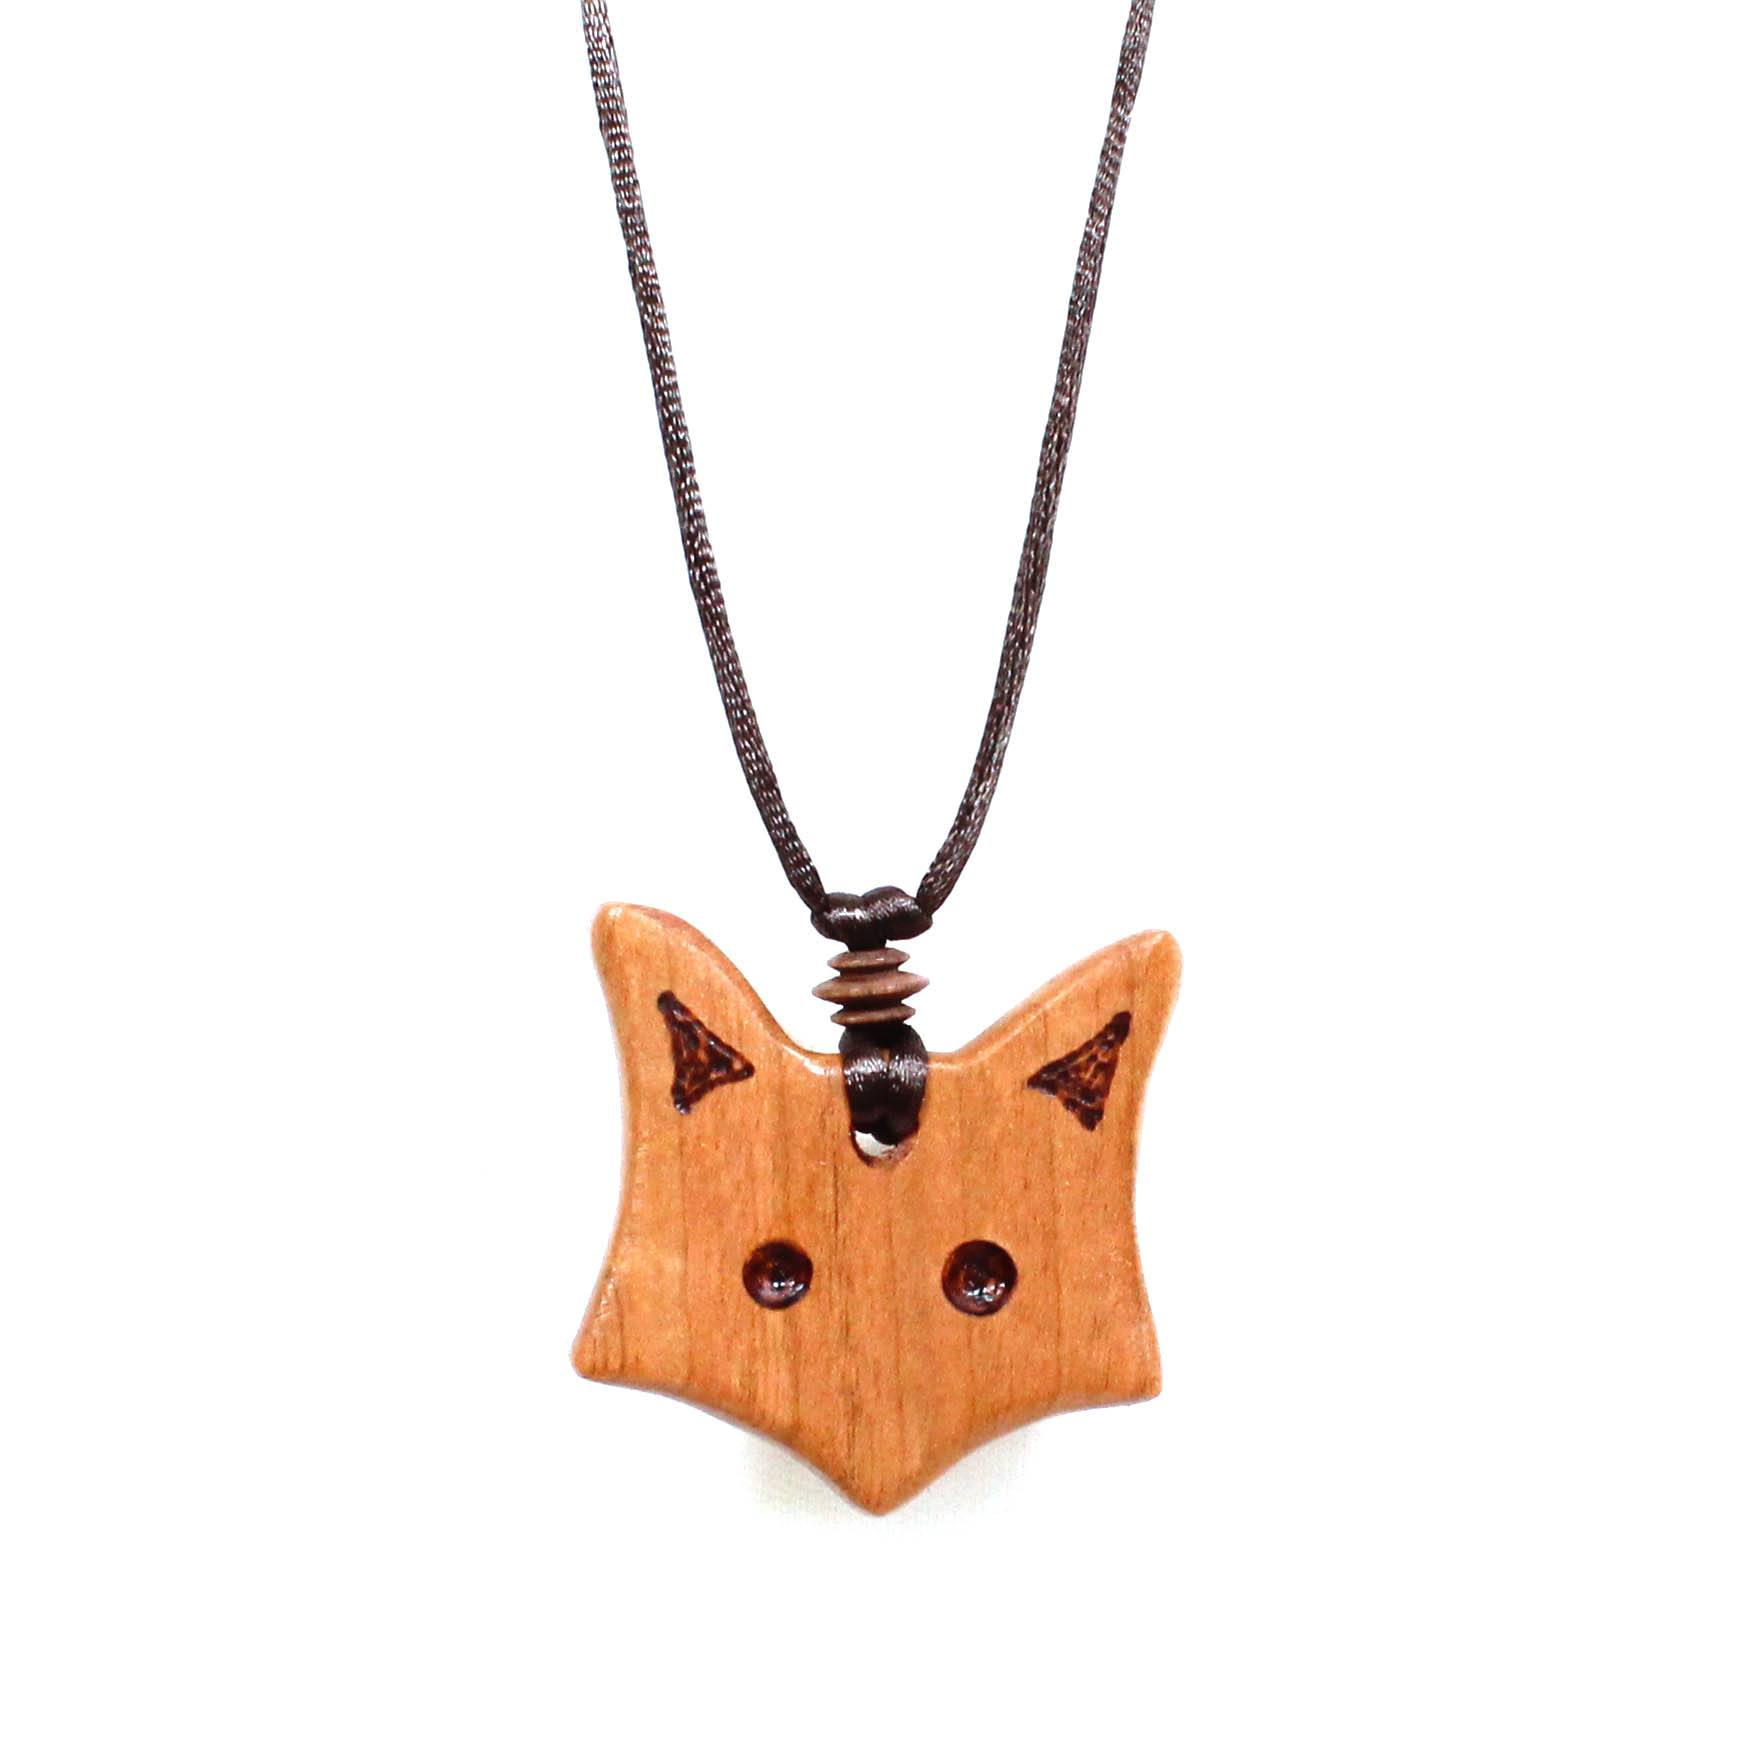 Natural wood fox teething fiddle necklace pendant fox pendant applewood wooden teething necklace 001 natural wood fox teething necklace pendant aloadofball Choice Image